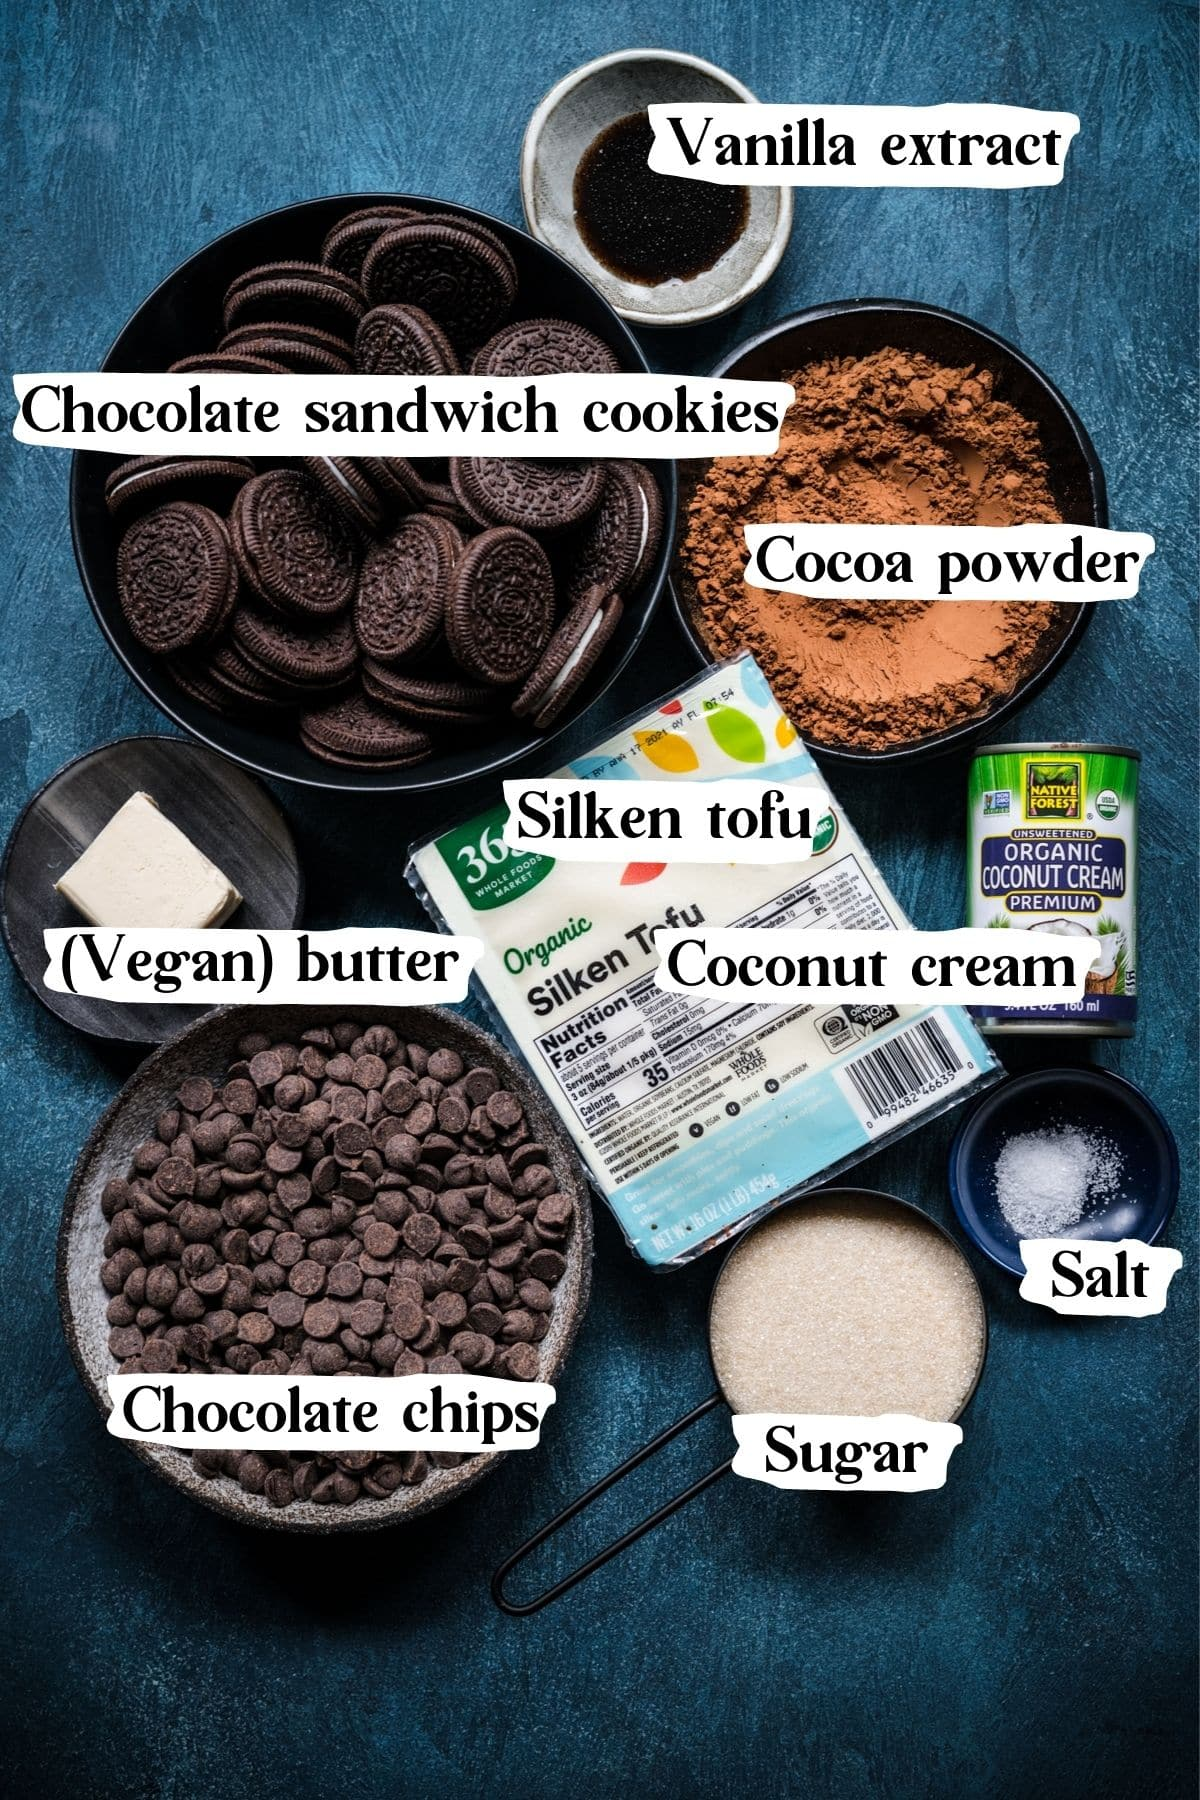 Overhead view of all ingredients for the vegan chocolate pie.